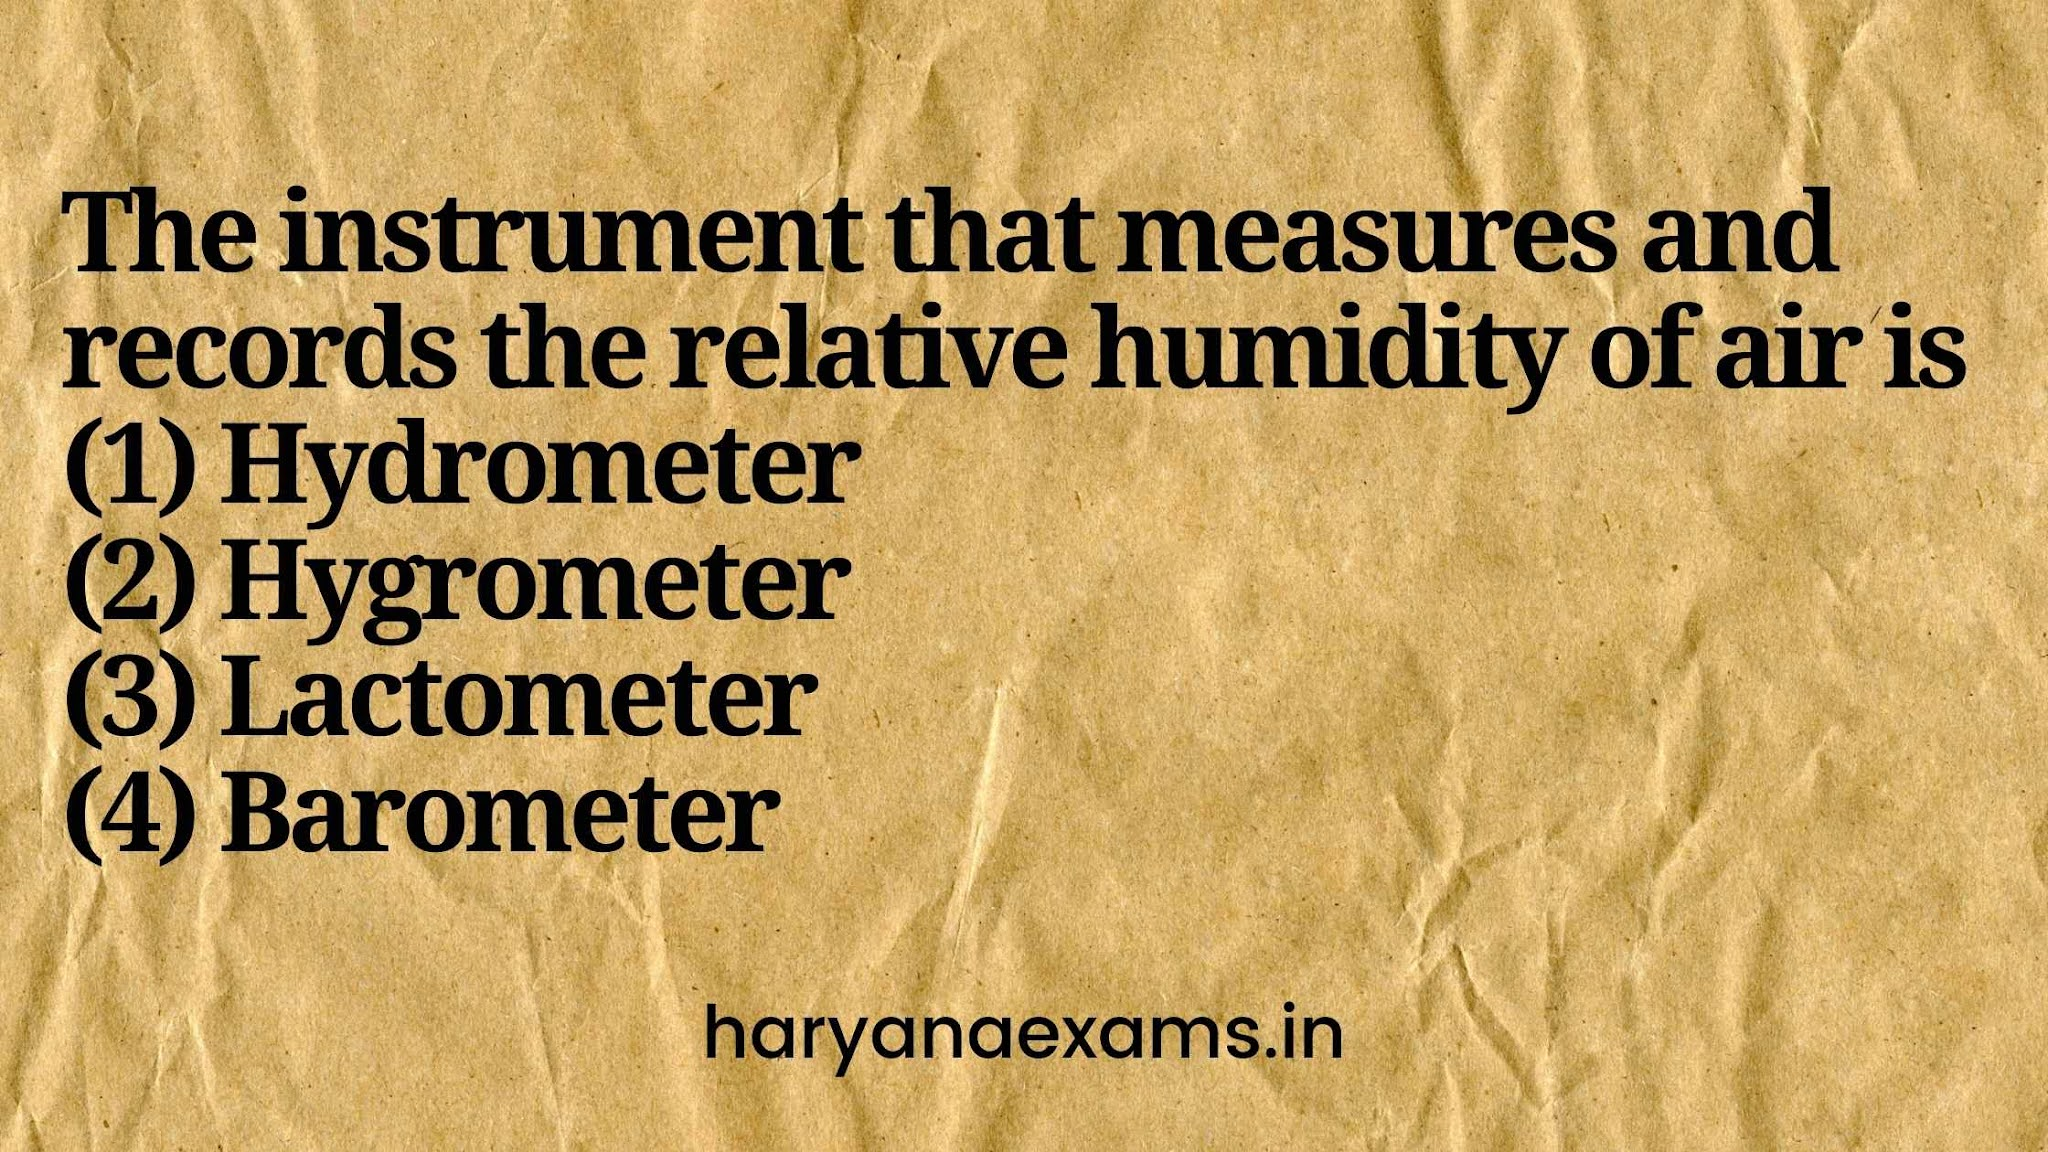 The instrument that measures and records the relative humidity of air is